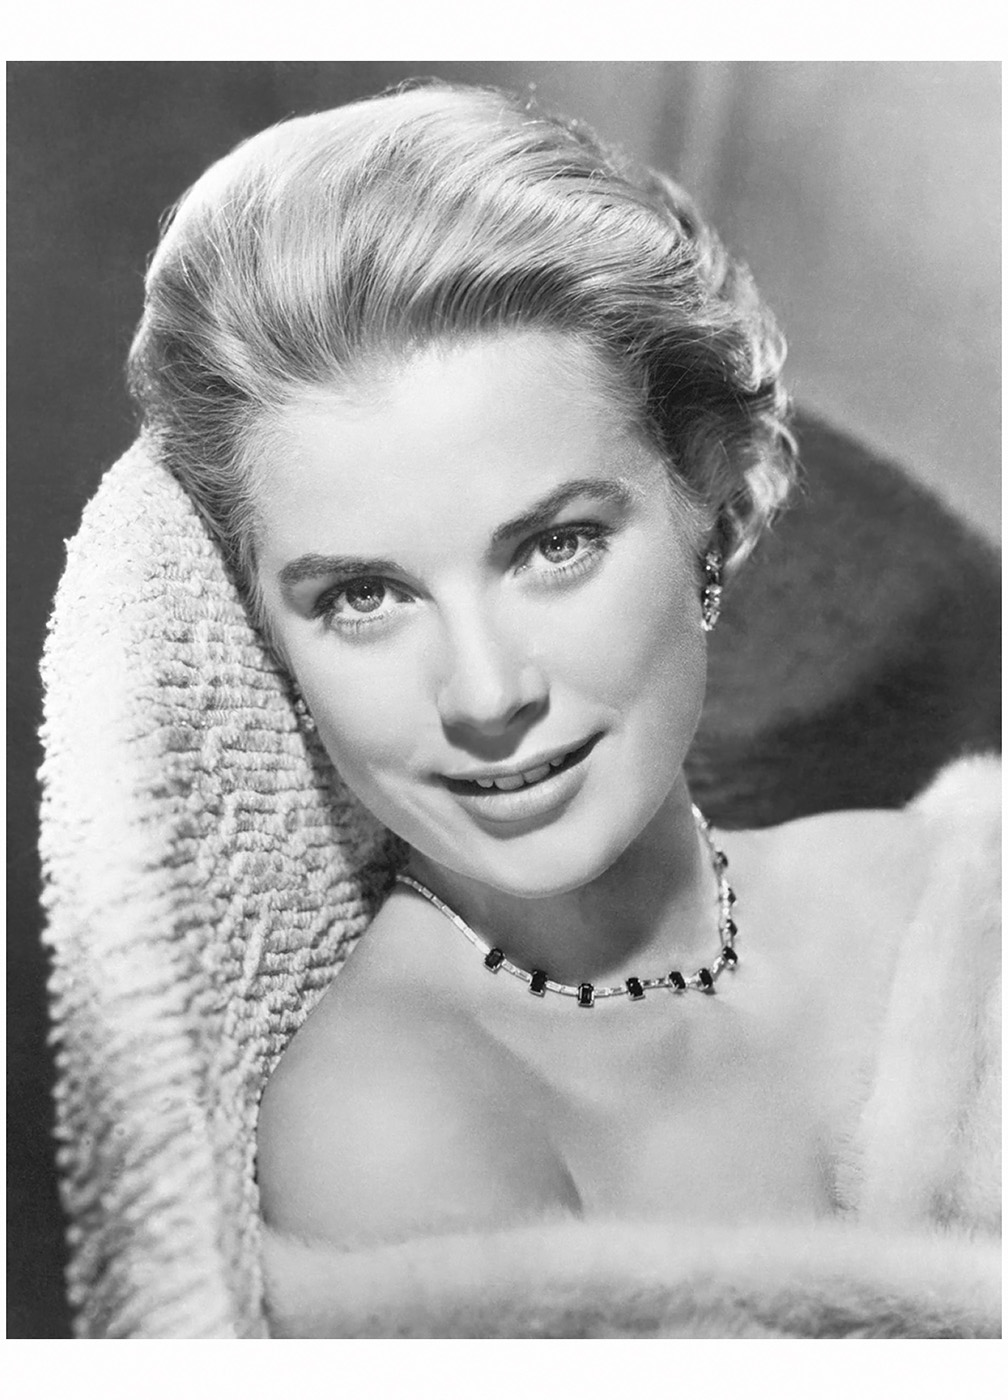 the reality of grace kelly My days with princess grace of monaco is my mother's eyewitness account of the real life of grace kelly after she became princess grace of monaco, told by one of her closest friends for 25 years.